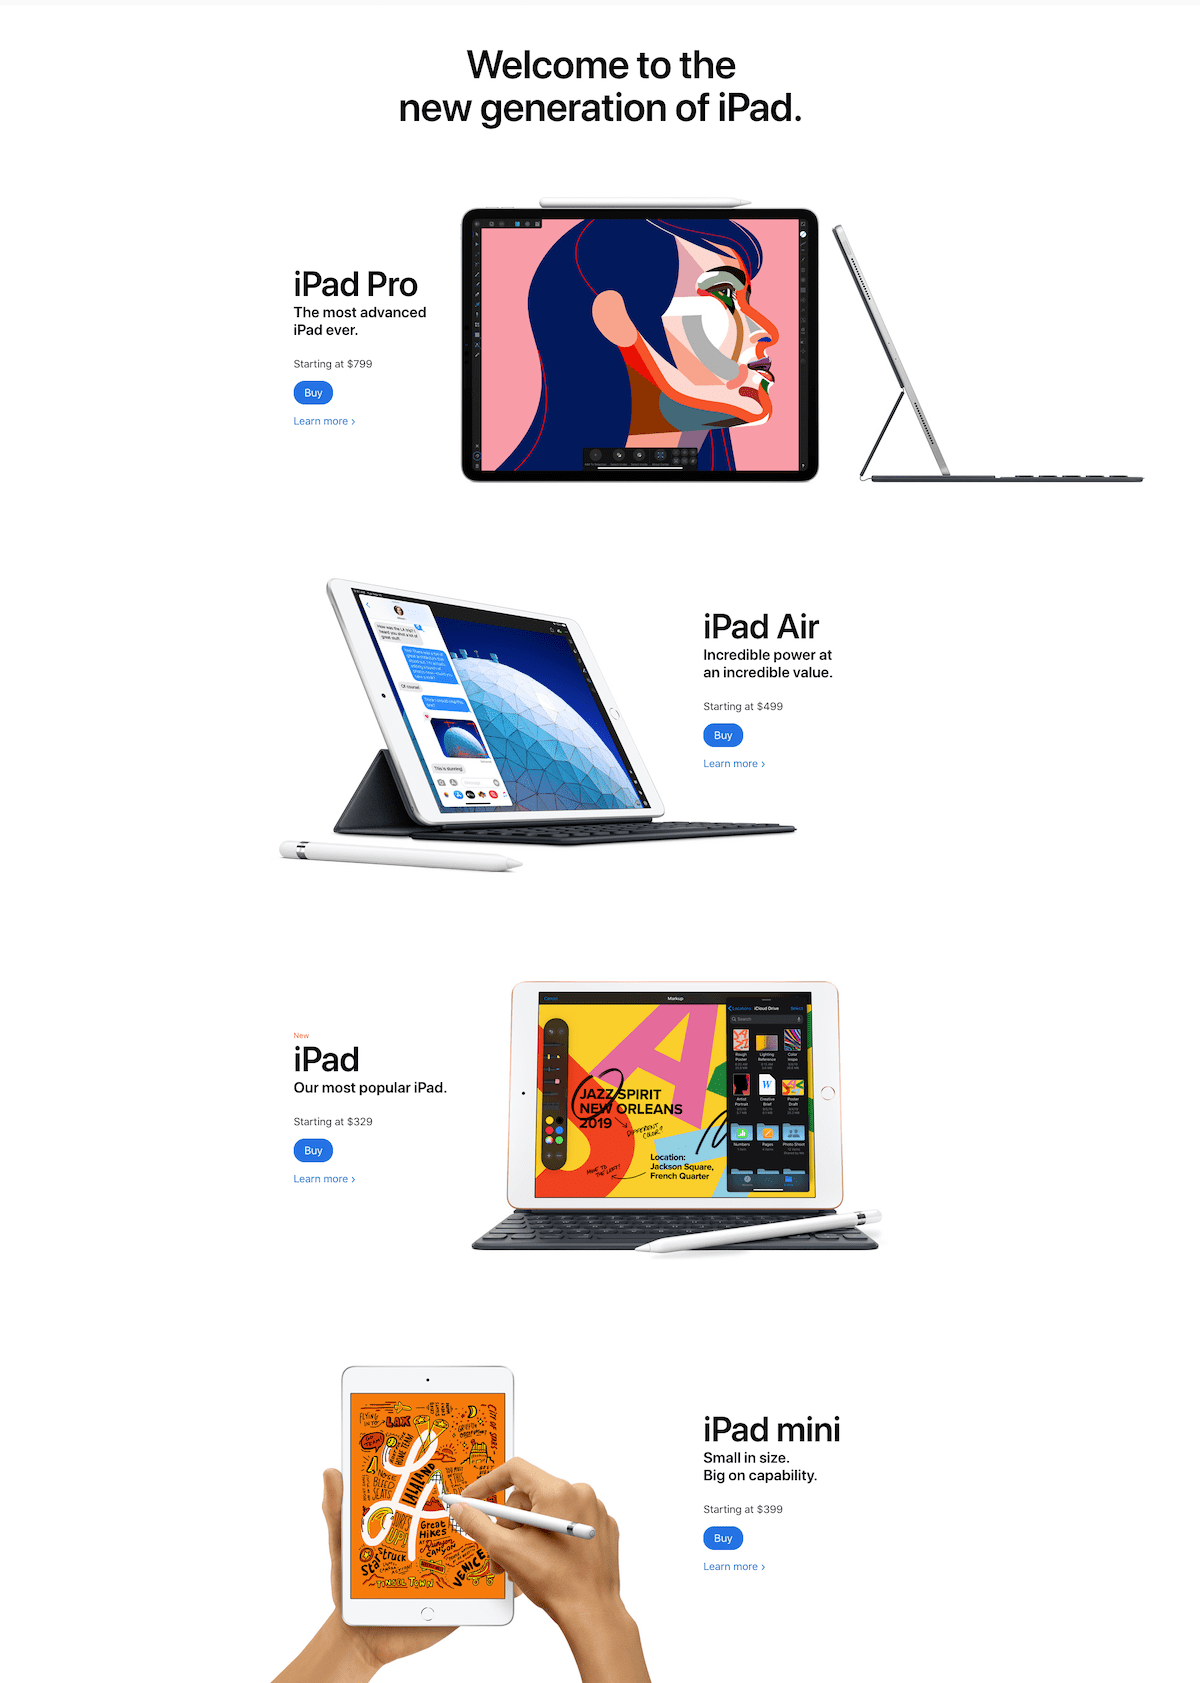 The iPad page is a good example of the use of blanks and minimalist design.